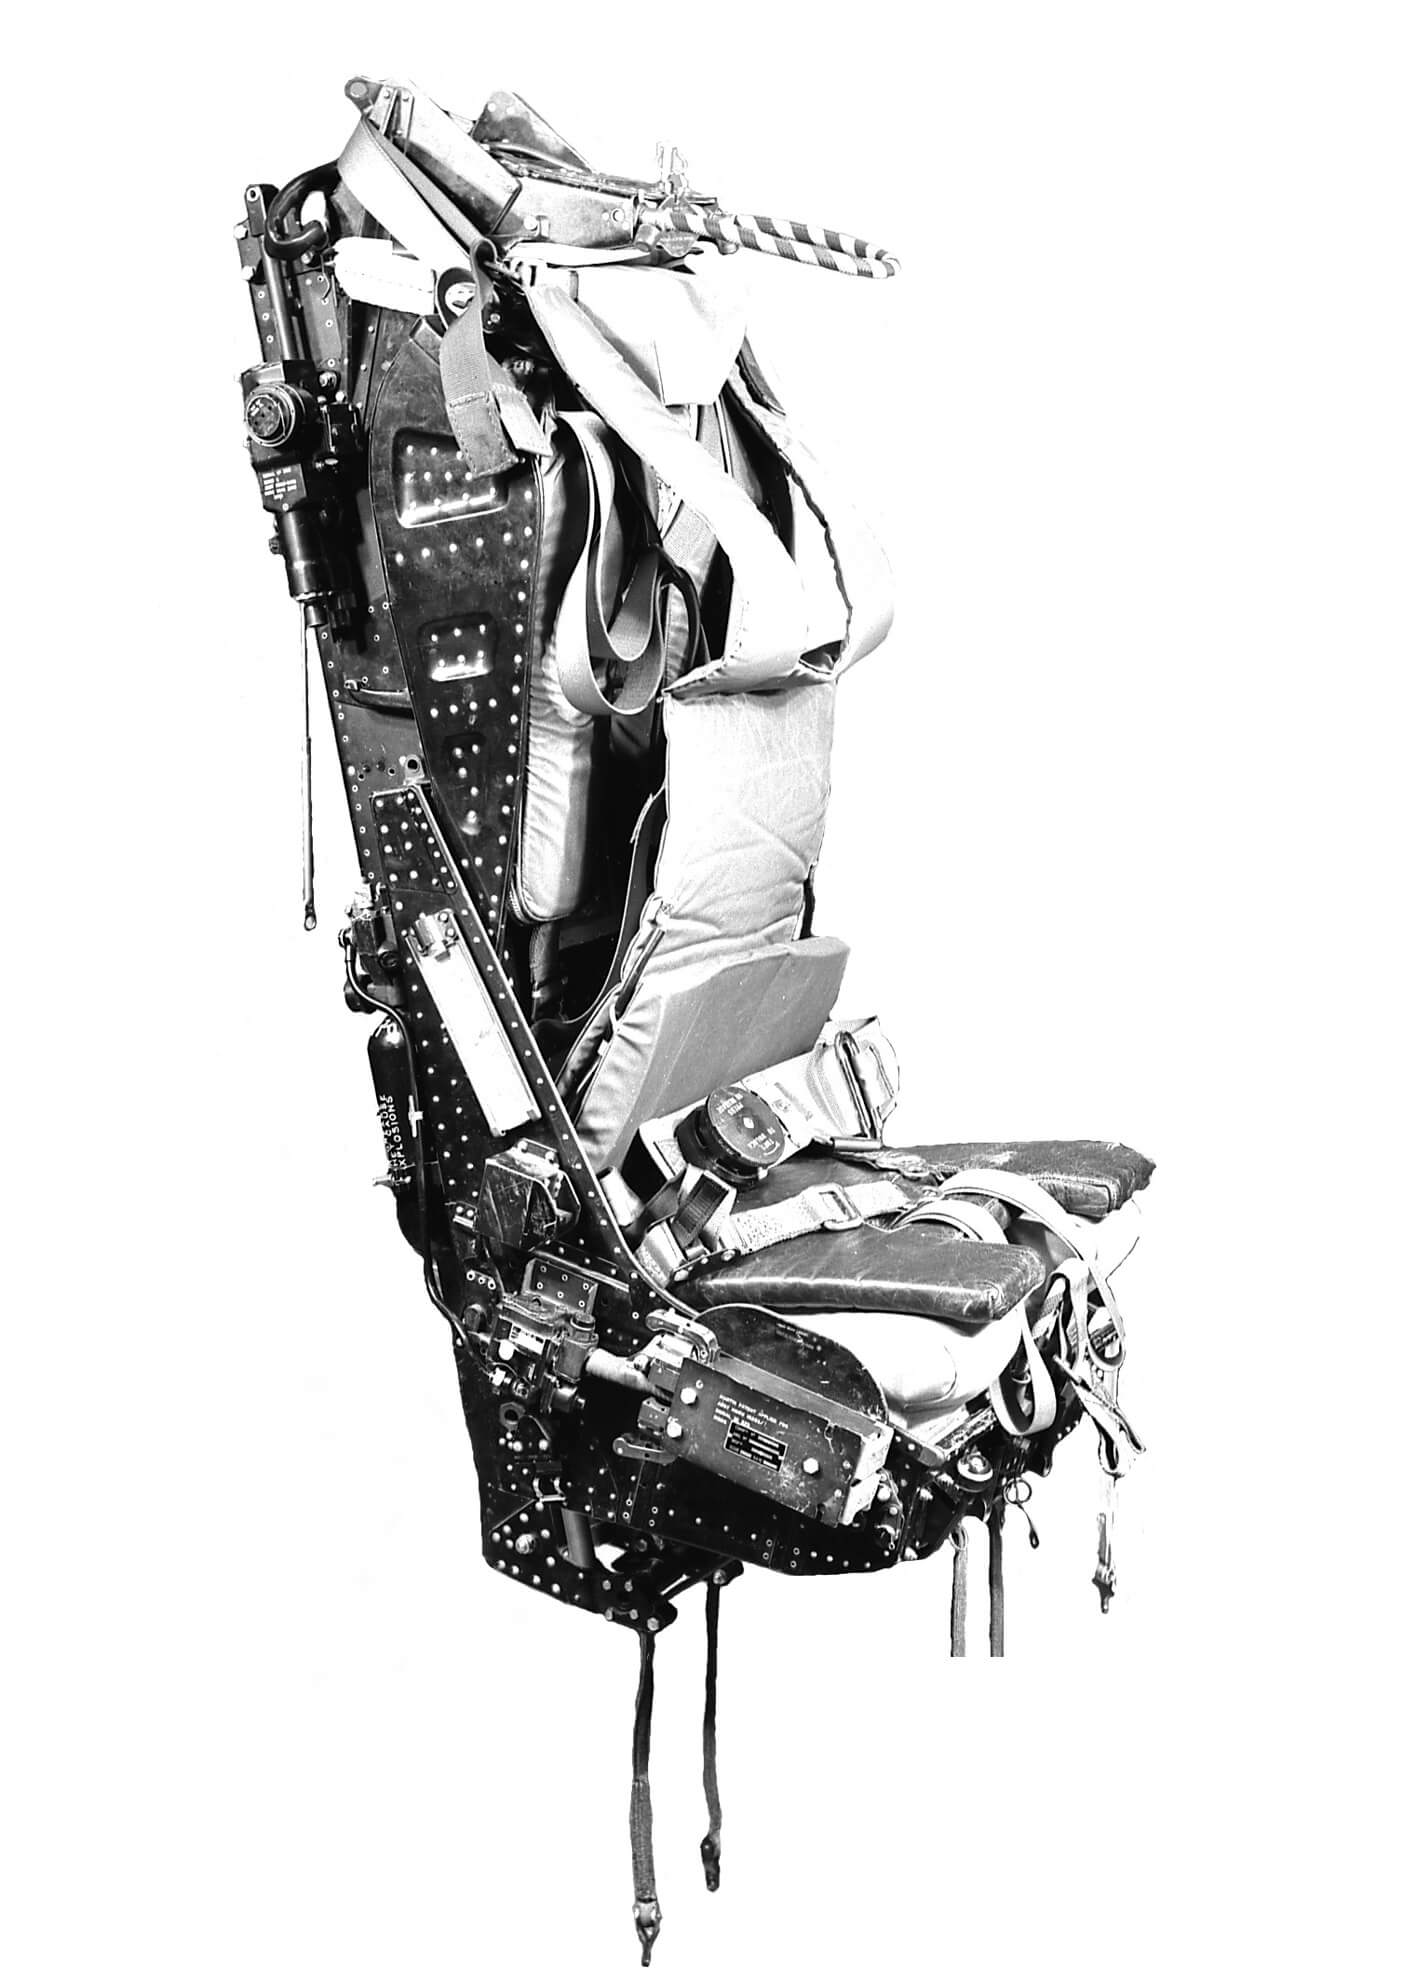 Mk4 Ejection Seat